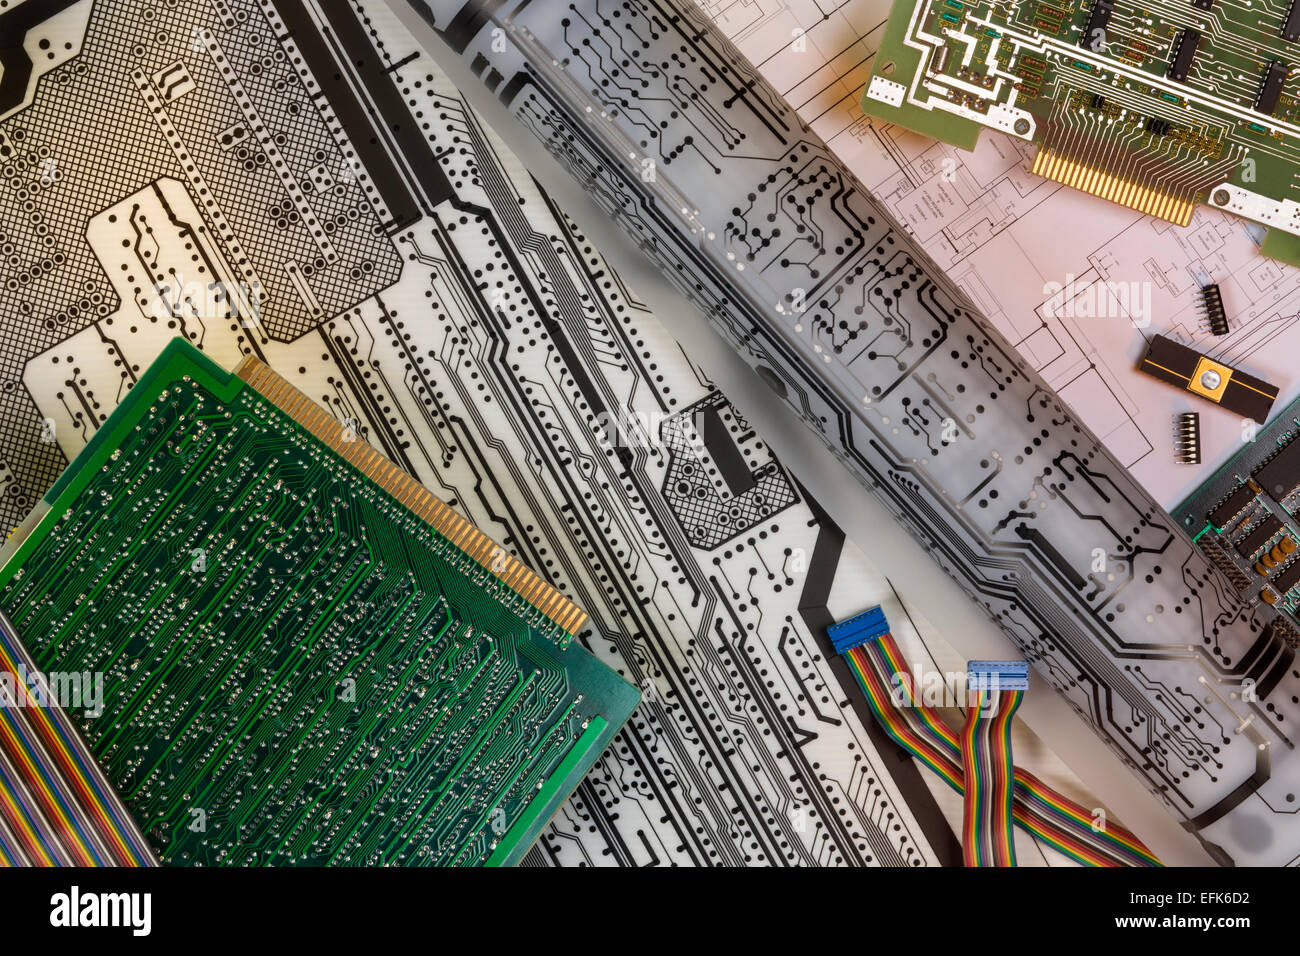 Electronics - The design of Printed Circuit Boards - Stock Image